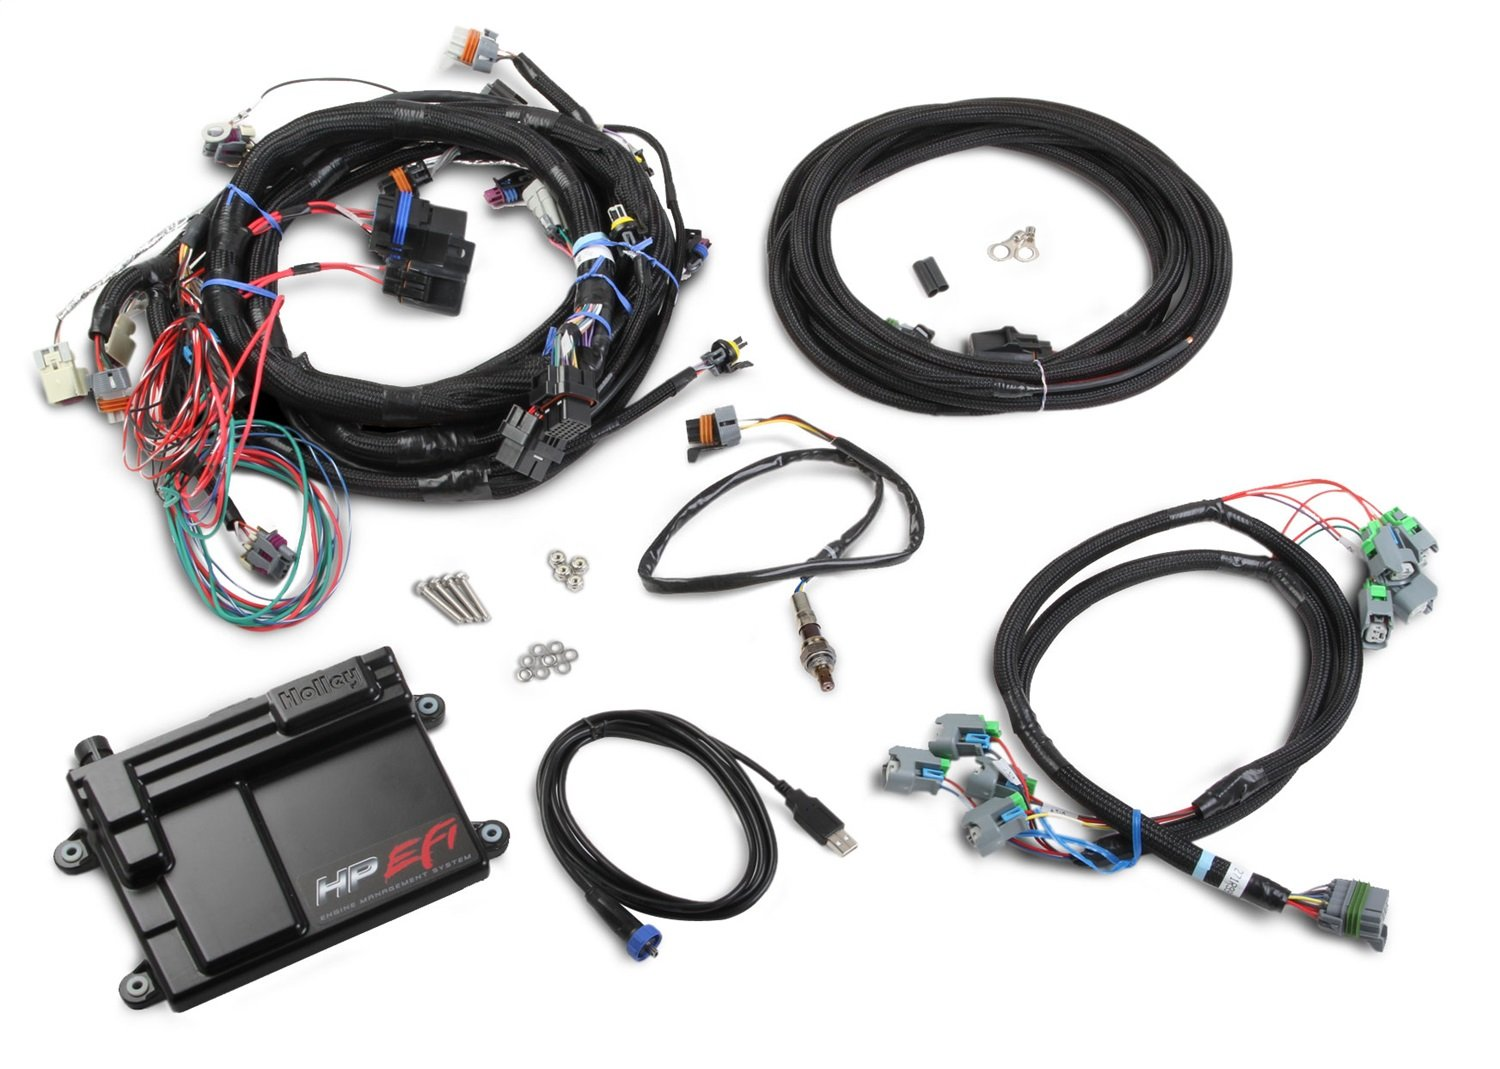 Amazon.com: Holley 550603N Wiring Harness: Automotive on